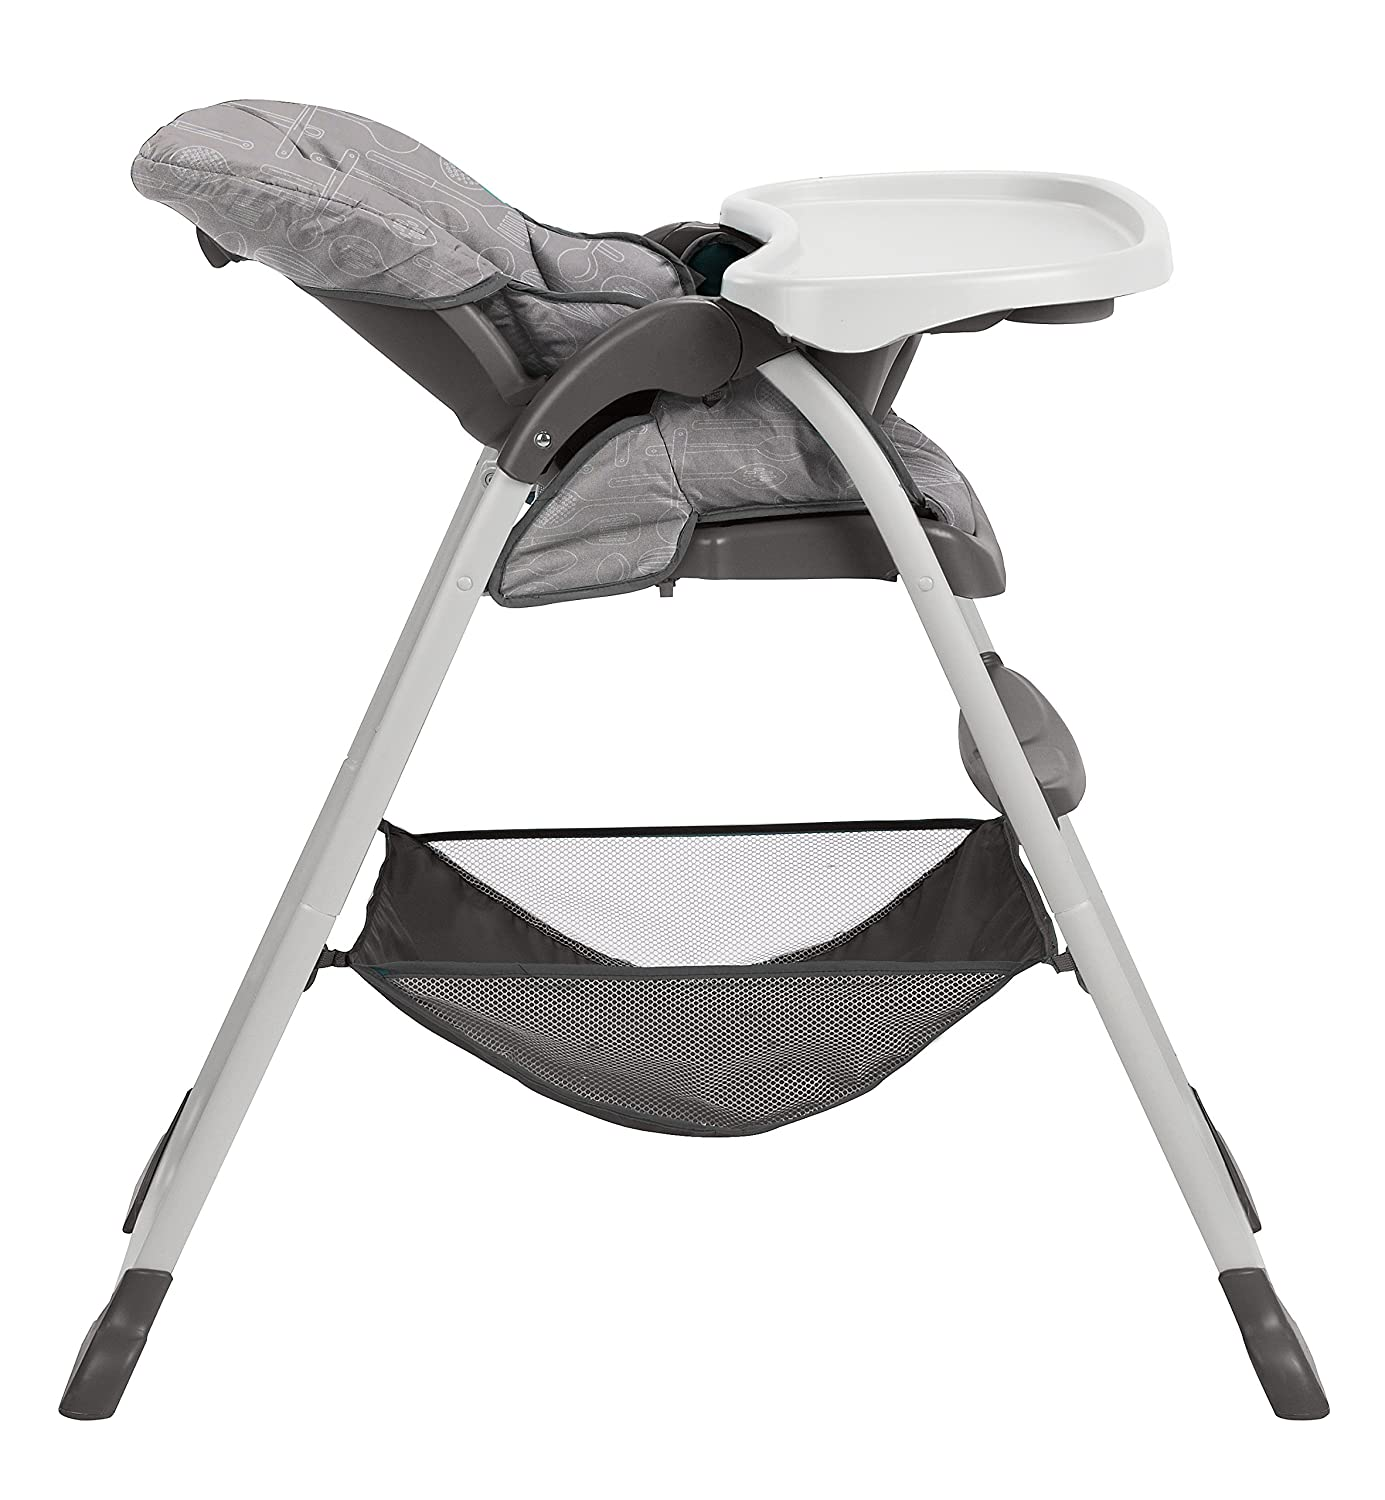 graco slim spaces high chair knock off barcelona snacker whisk chairs 1927570